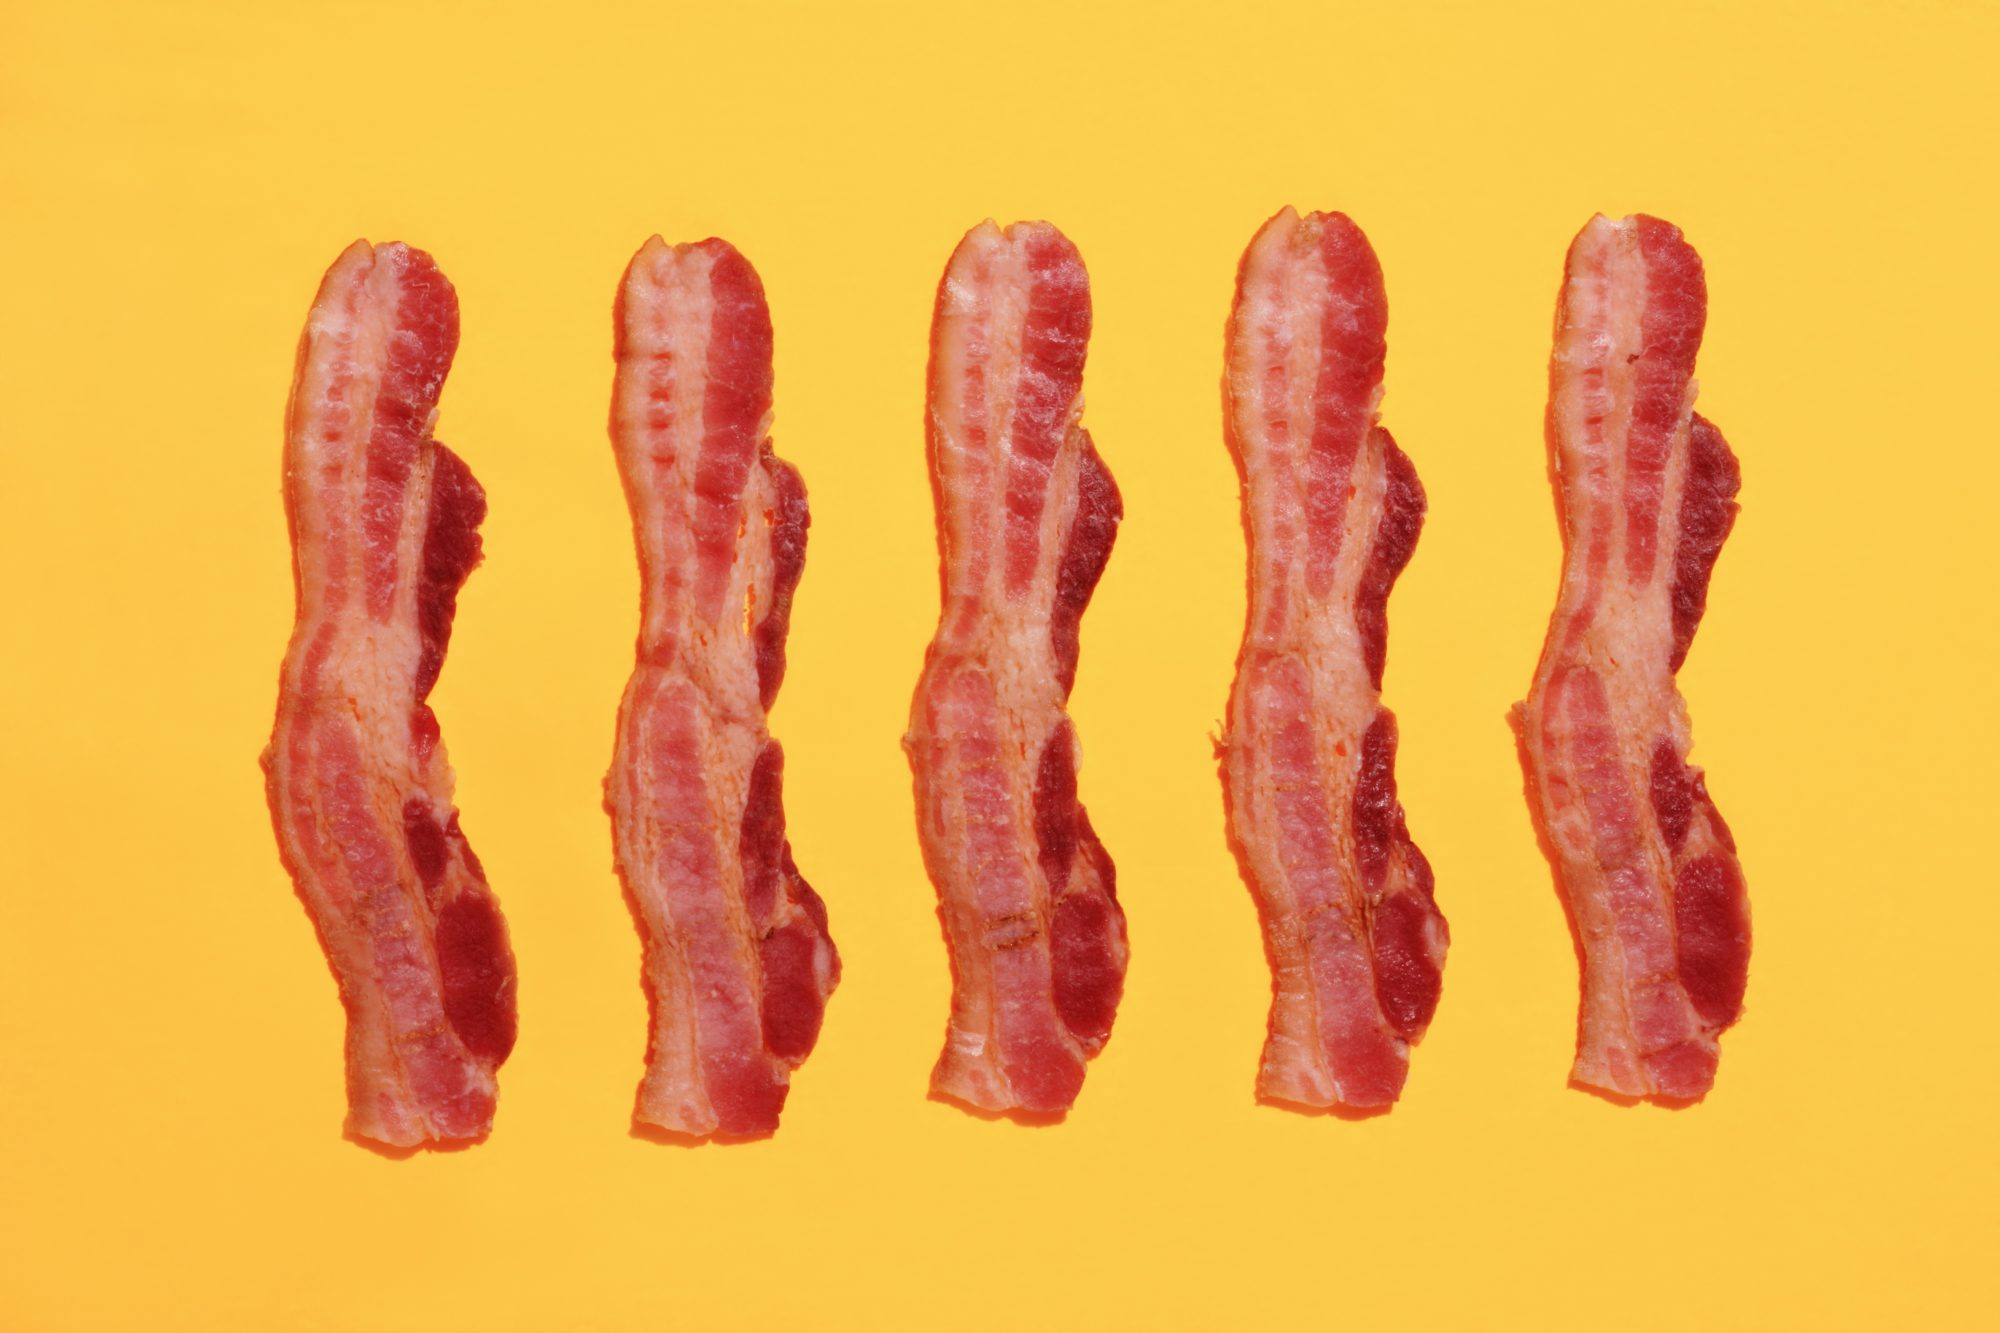 PSA: There's No Such Thing as Uncured Bacon